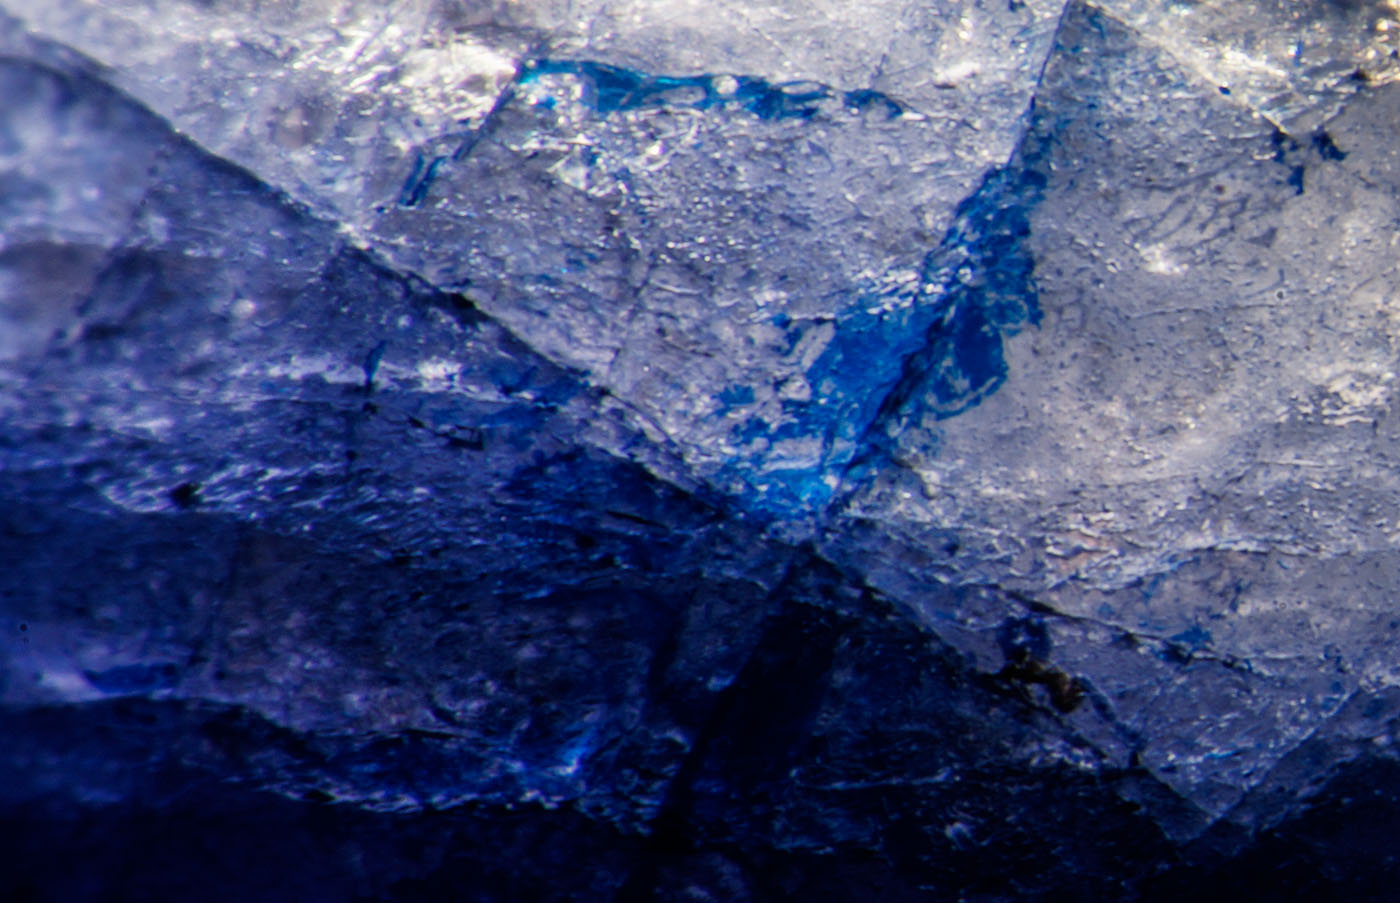 Figure 6. Blue cobalt-doped glass fills a surface-reaching fissure in this first-generation stone. Oblique fiber-optic illumination. (Photo: Wimon Manorotkul, Lotus Gemology).